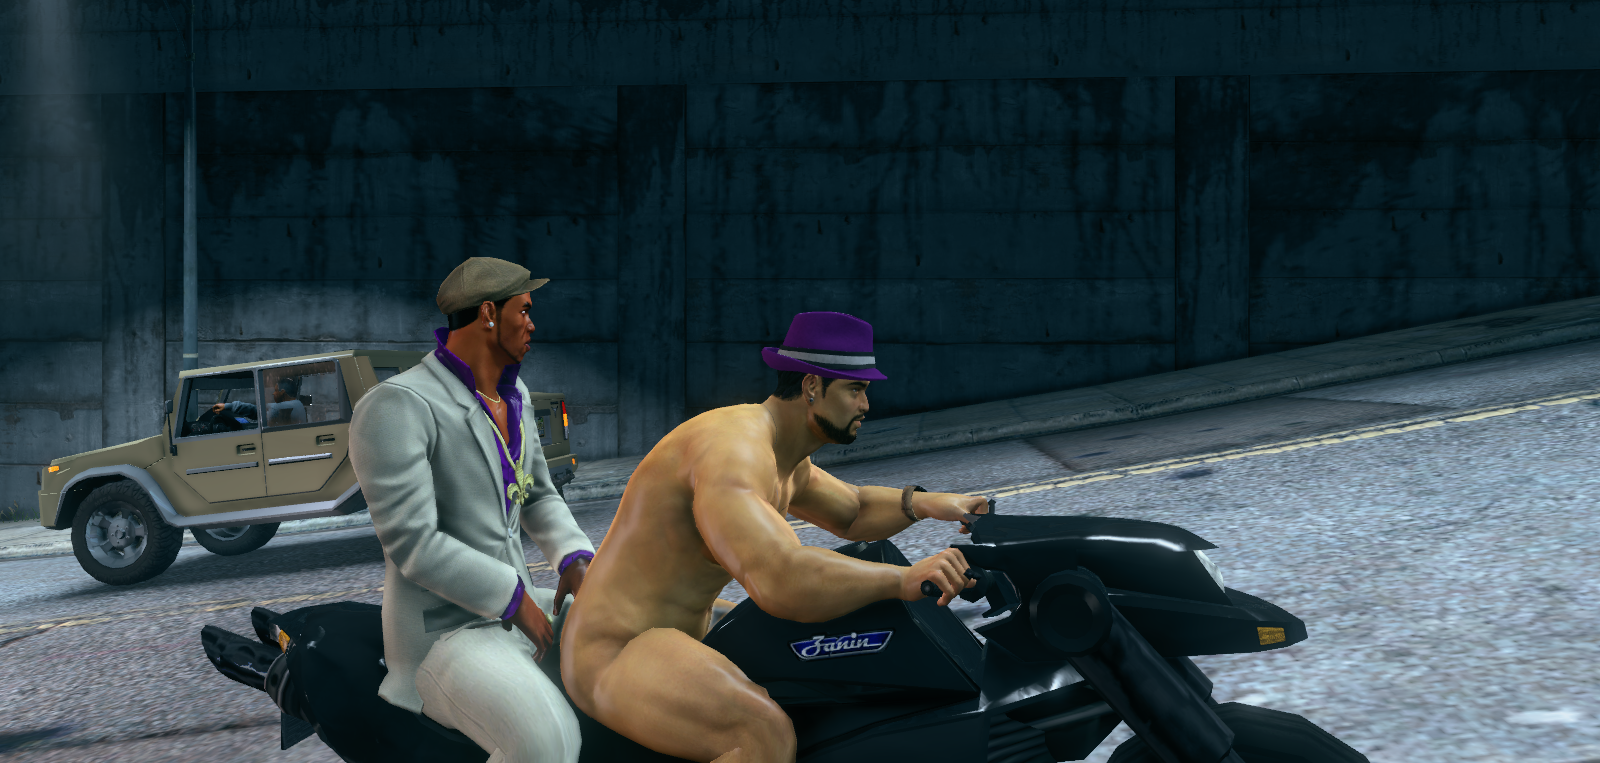 Saints row 2 uncensored patch porn images